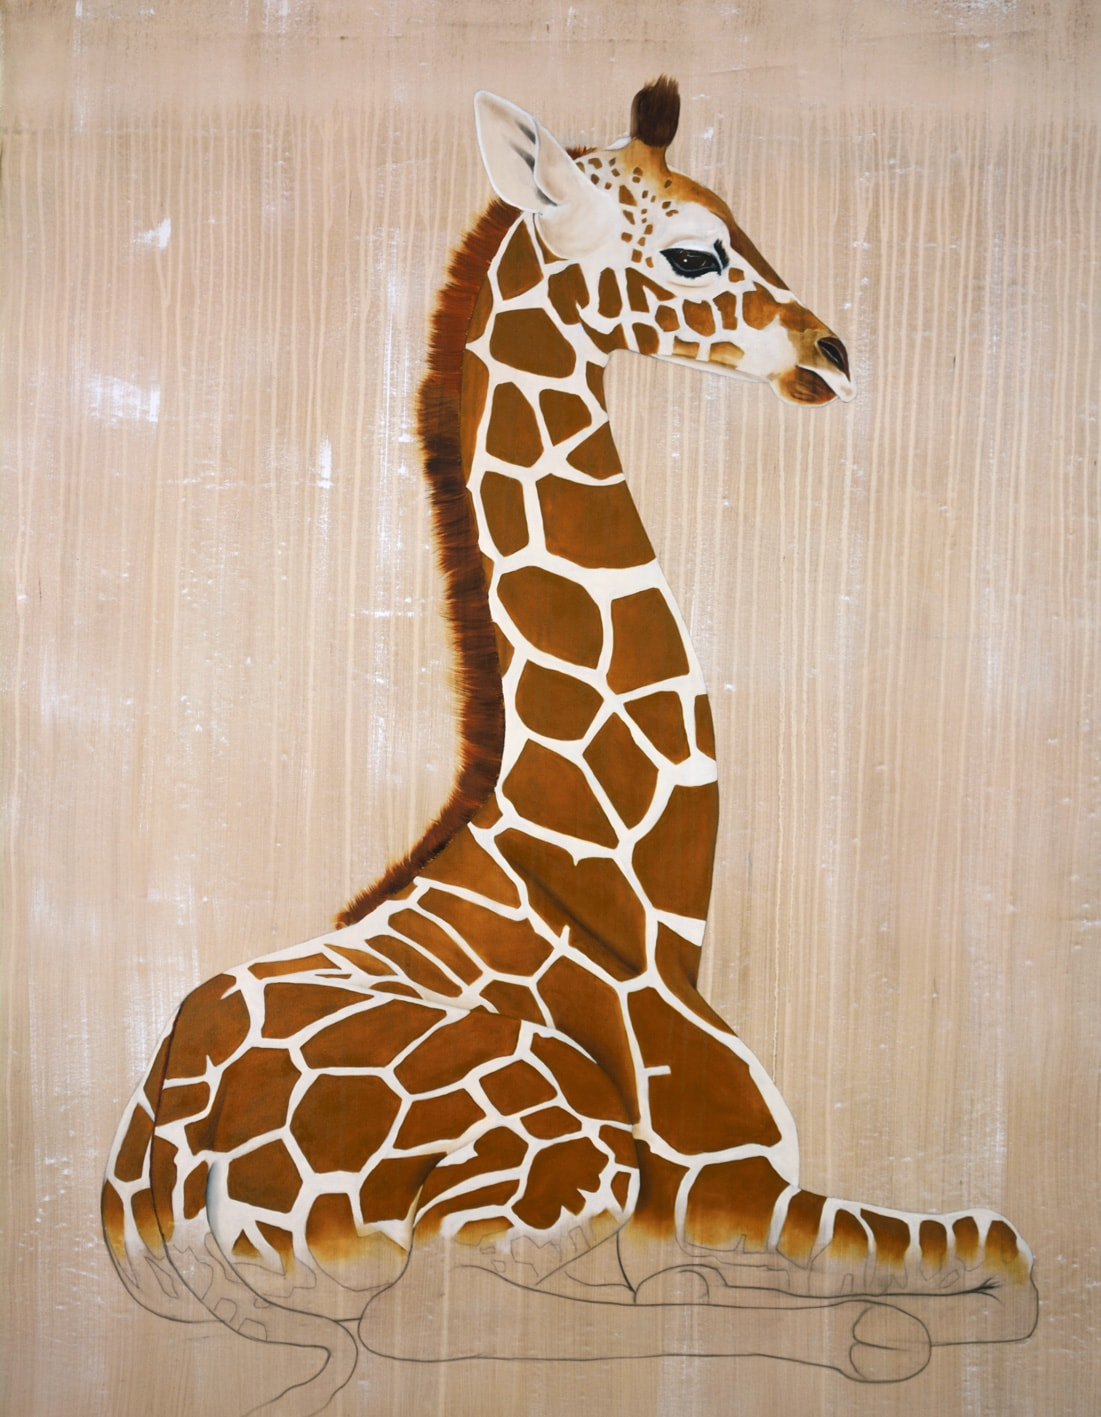 GIRAFE de Rothschild divers Thierry Bisch painter animals painting art decoration hotel design interior luxury nature biodiversity conservation